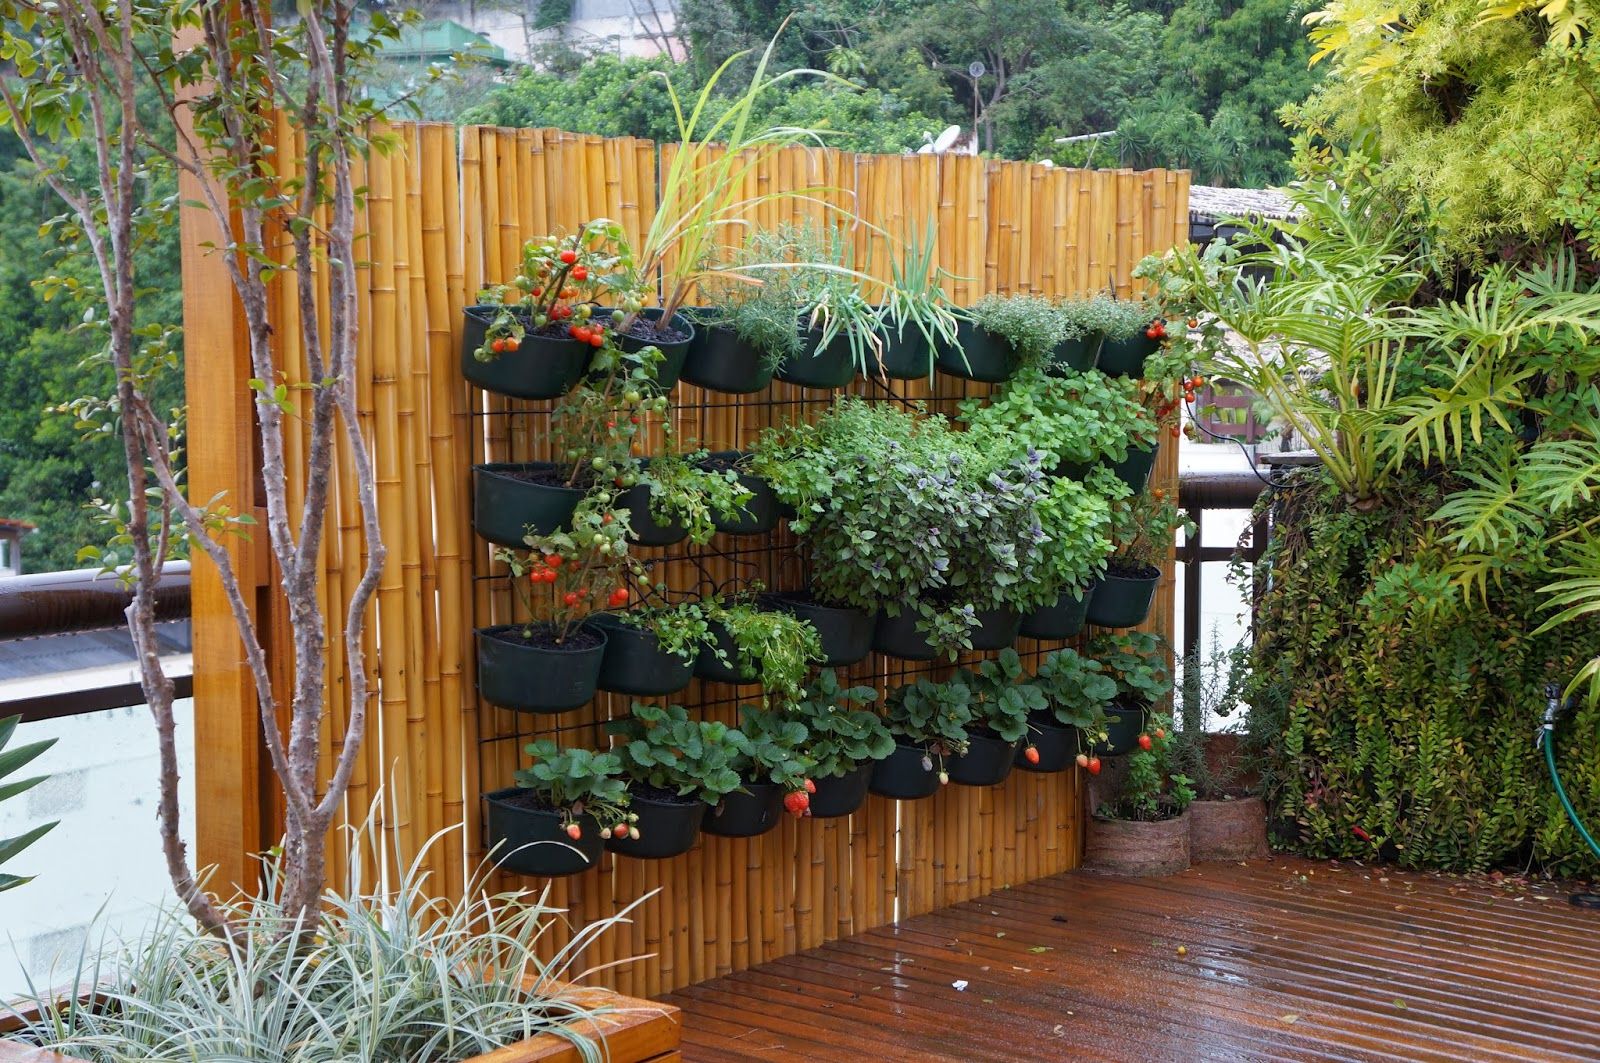 Gambar Pagar Rumah 30 Stunning Low-budget Diy Garden Pots And Containers